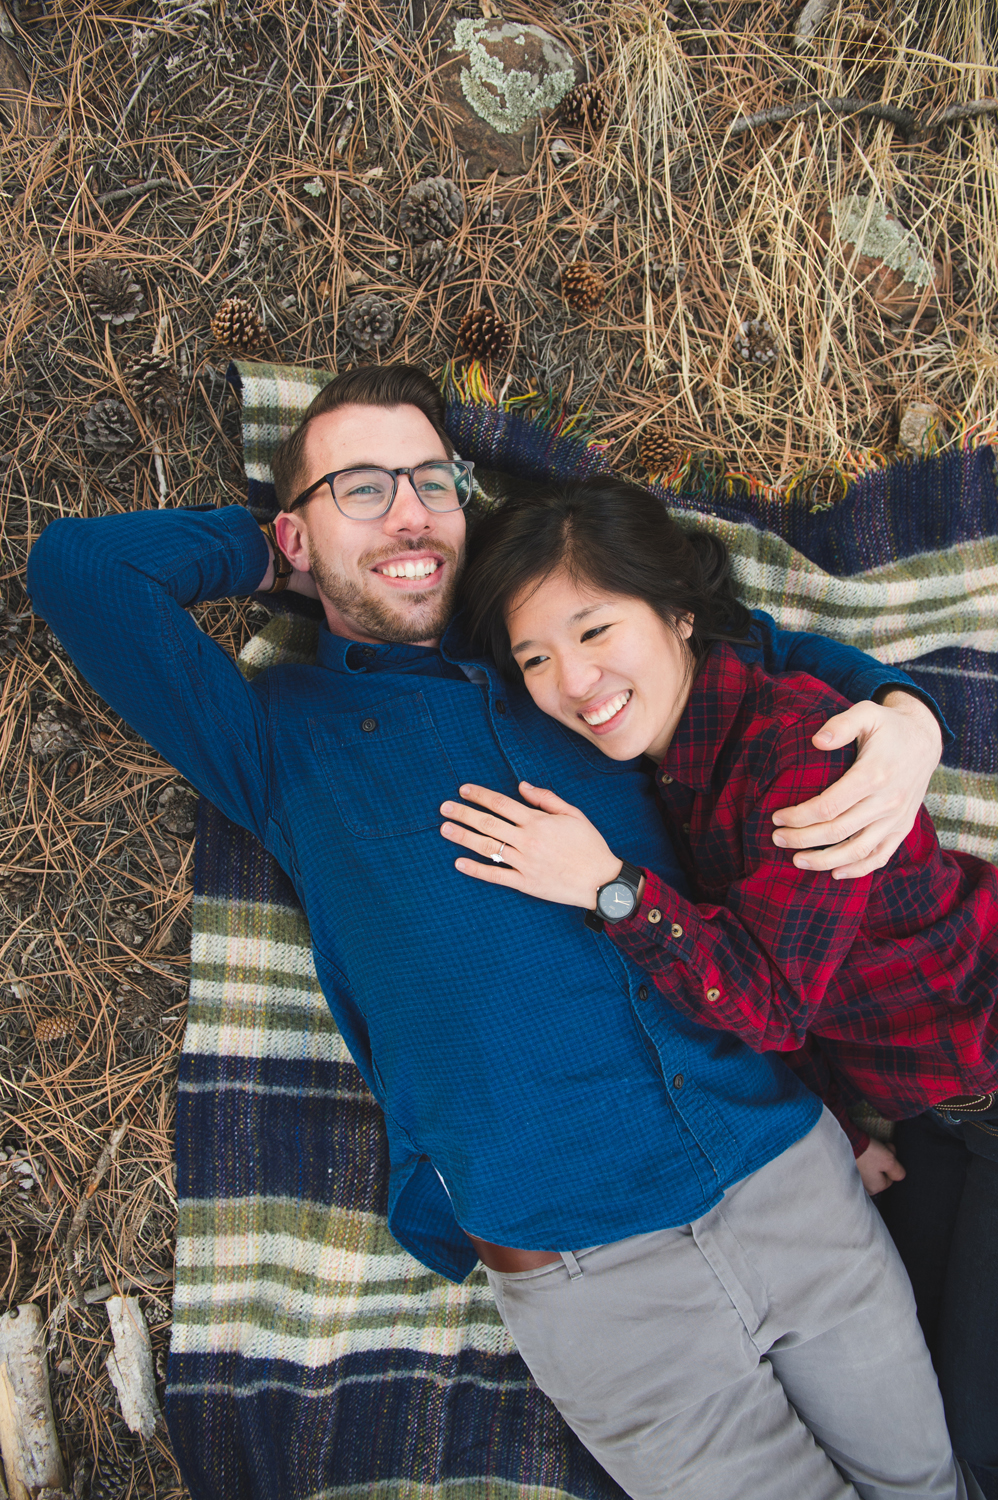 TiffanyandMark_Engaged_0807_squarespace.jpg